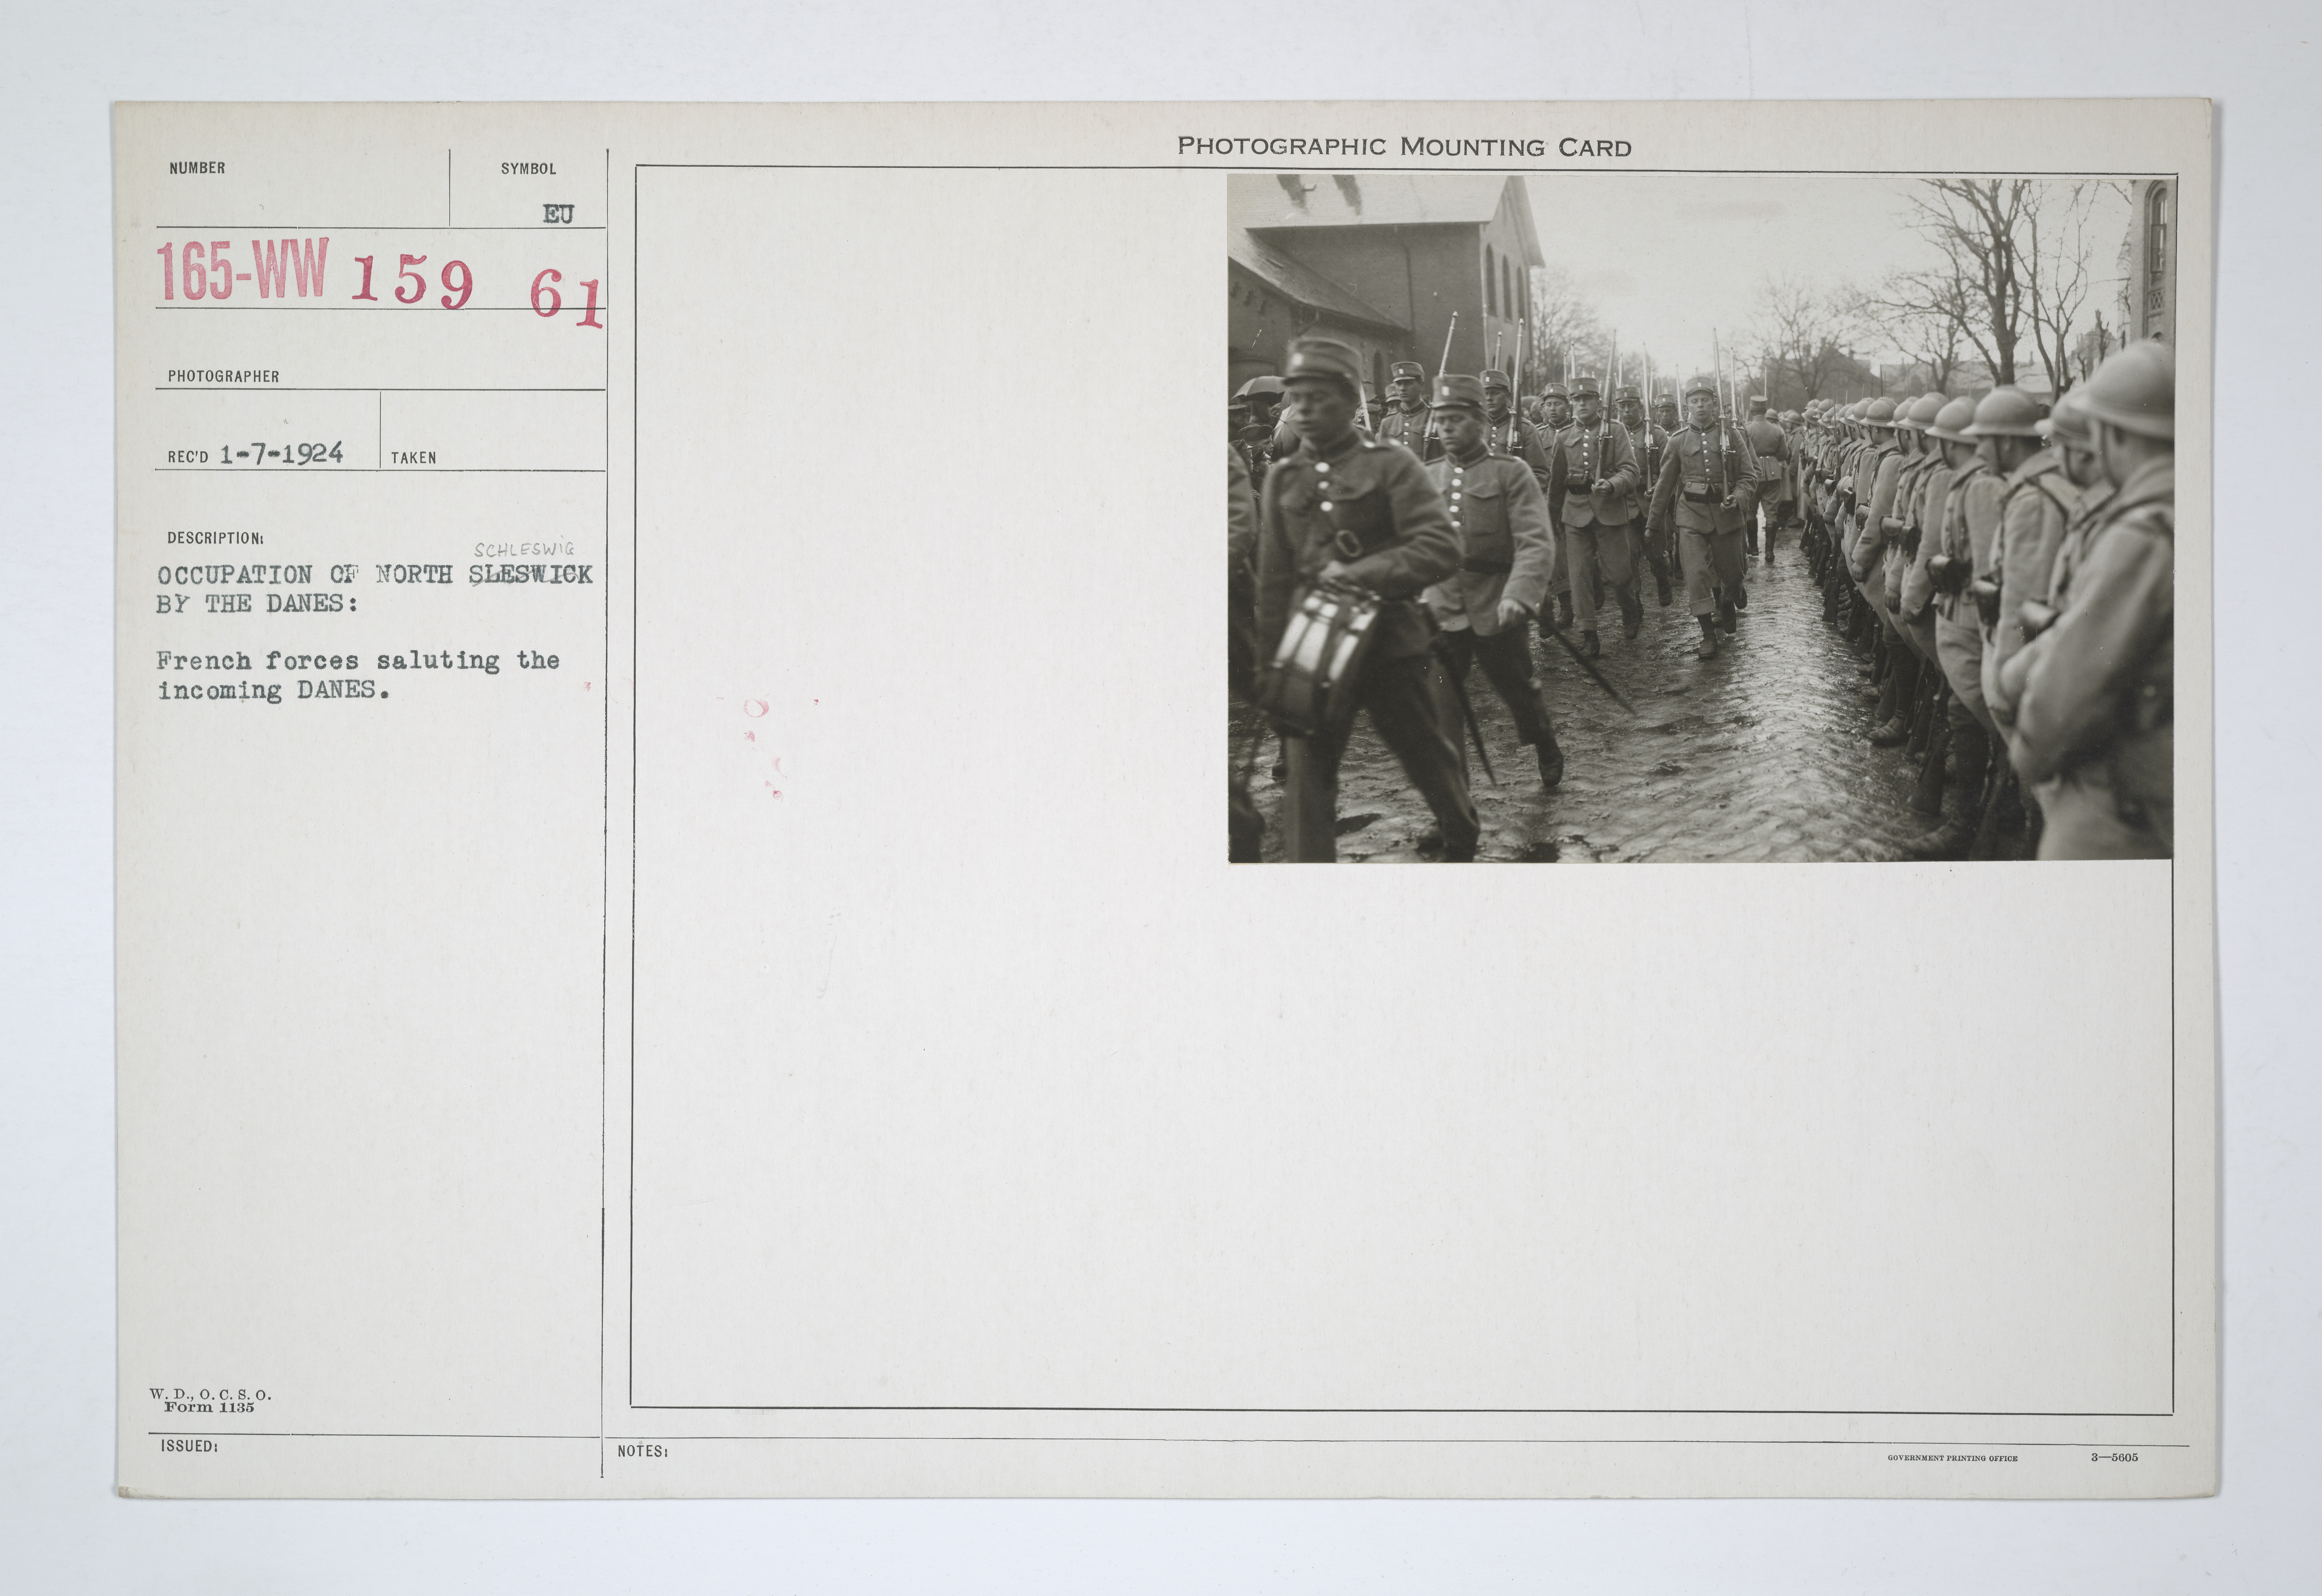 Enemy Activities - German Revolution - Occupation of North Schleswig by the Danes: French forces saluting the incoming Danes